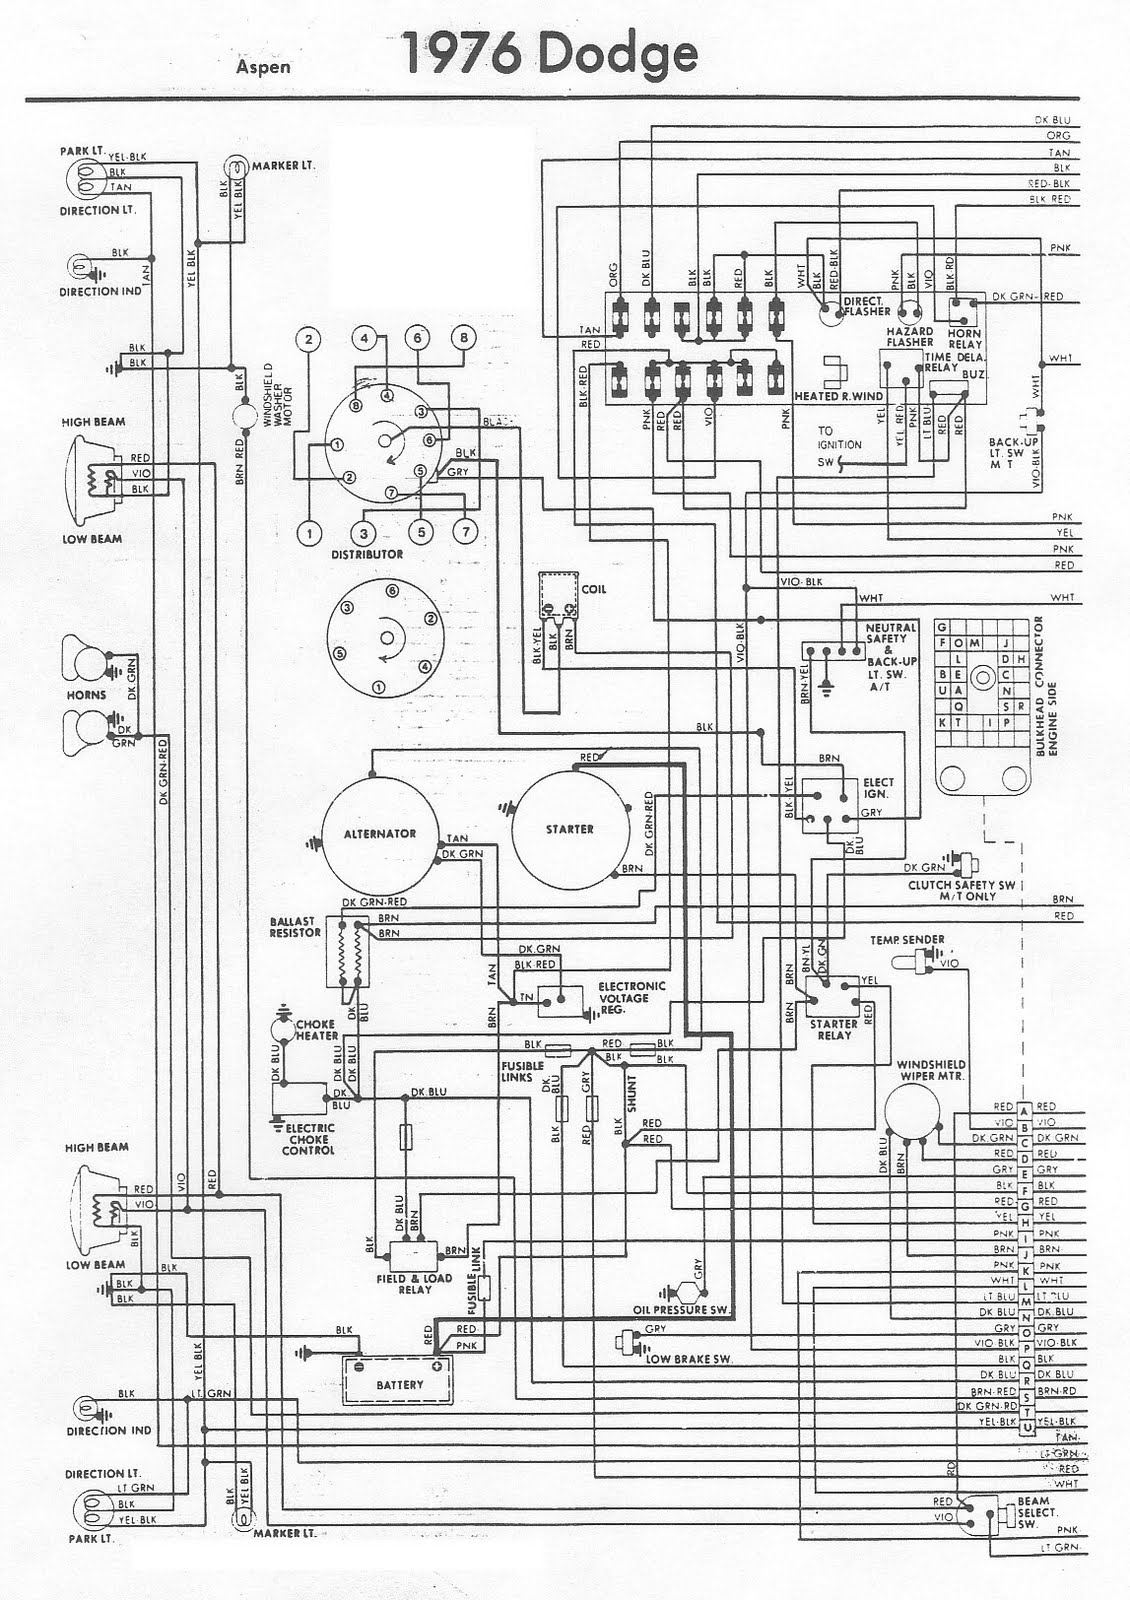 Wiring Diagram Electrical System Circuit 1976 Dodge Aspen | User Guide